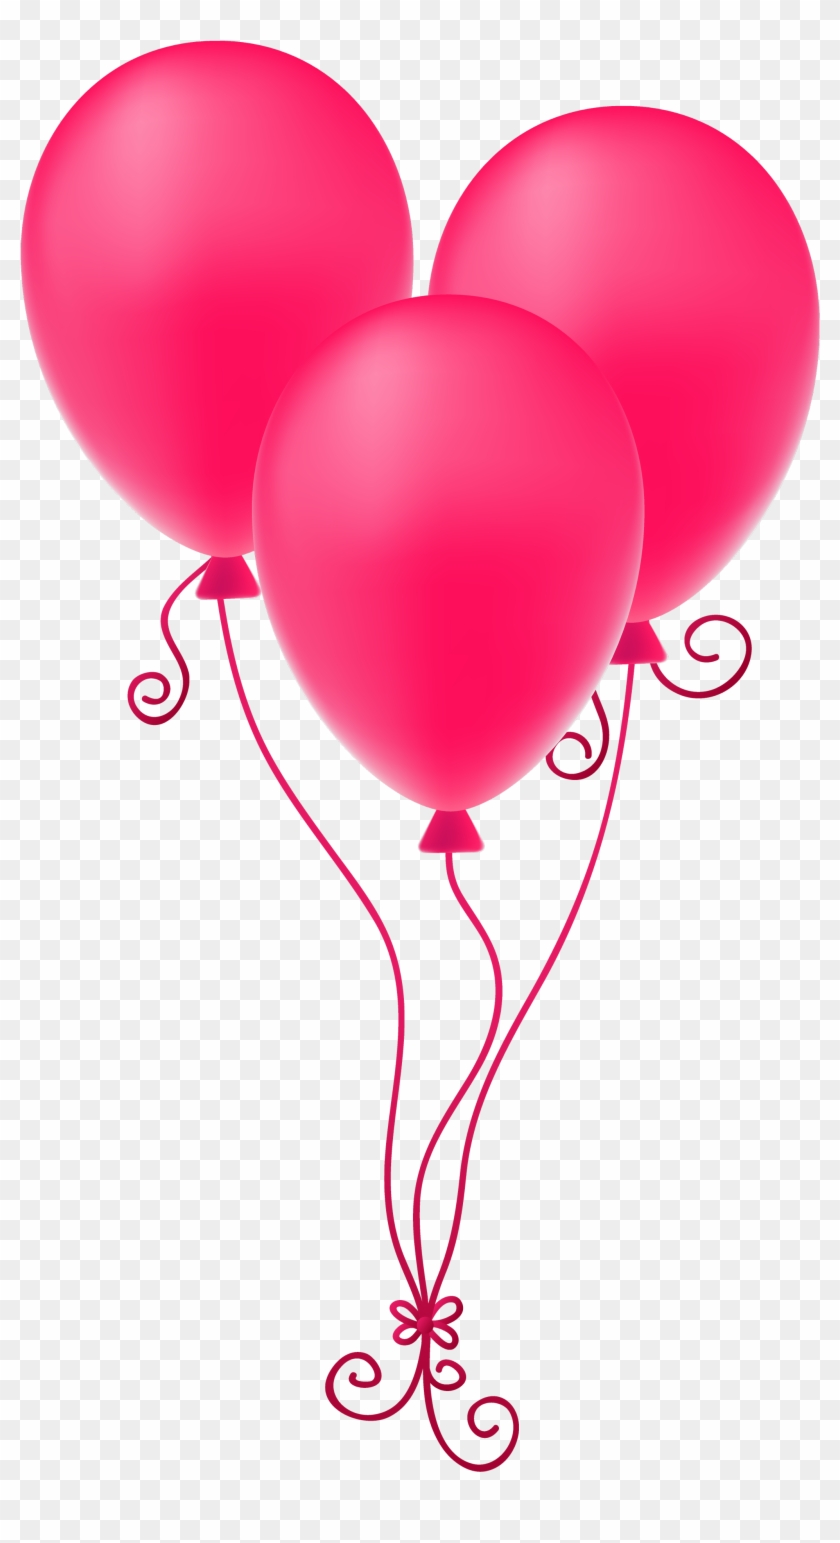 Image Library Download Balloons Free Png Image And.